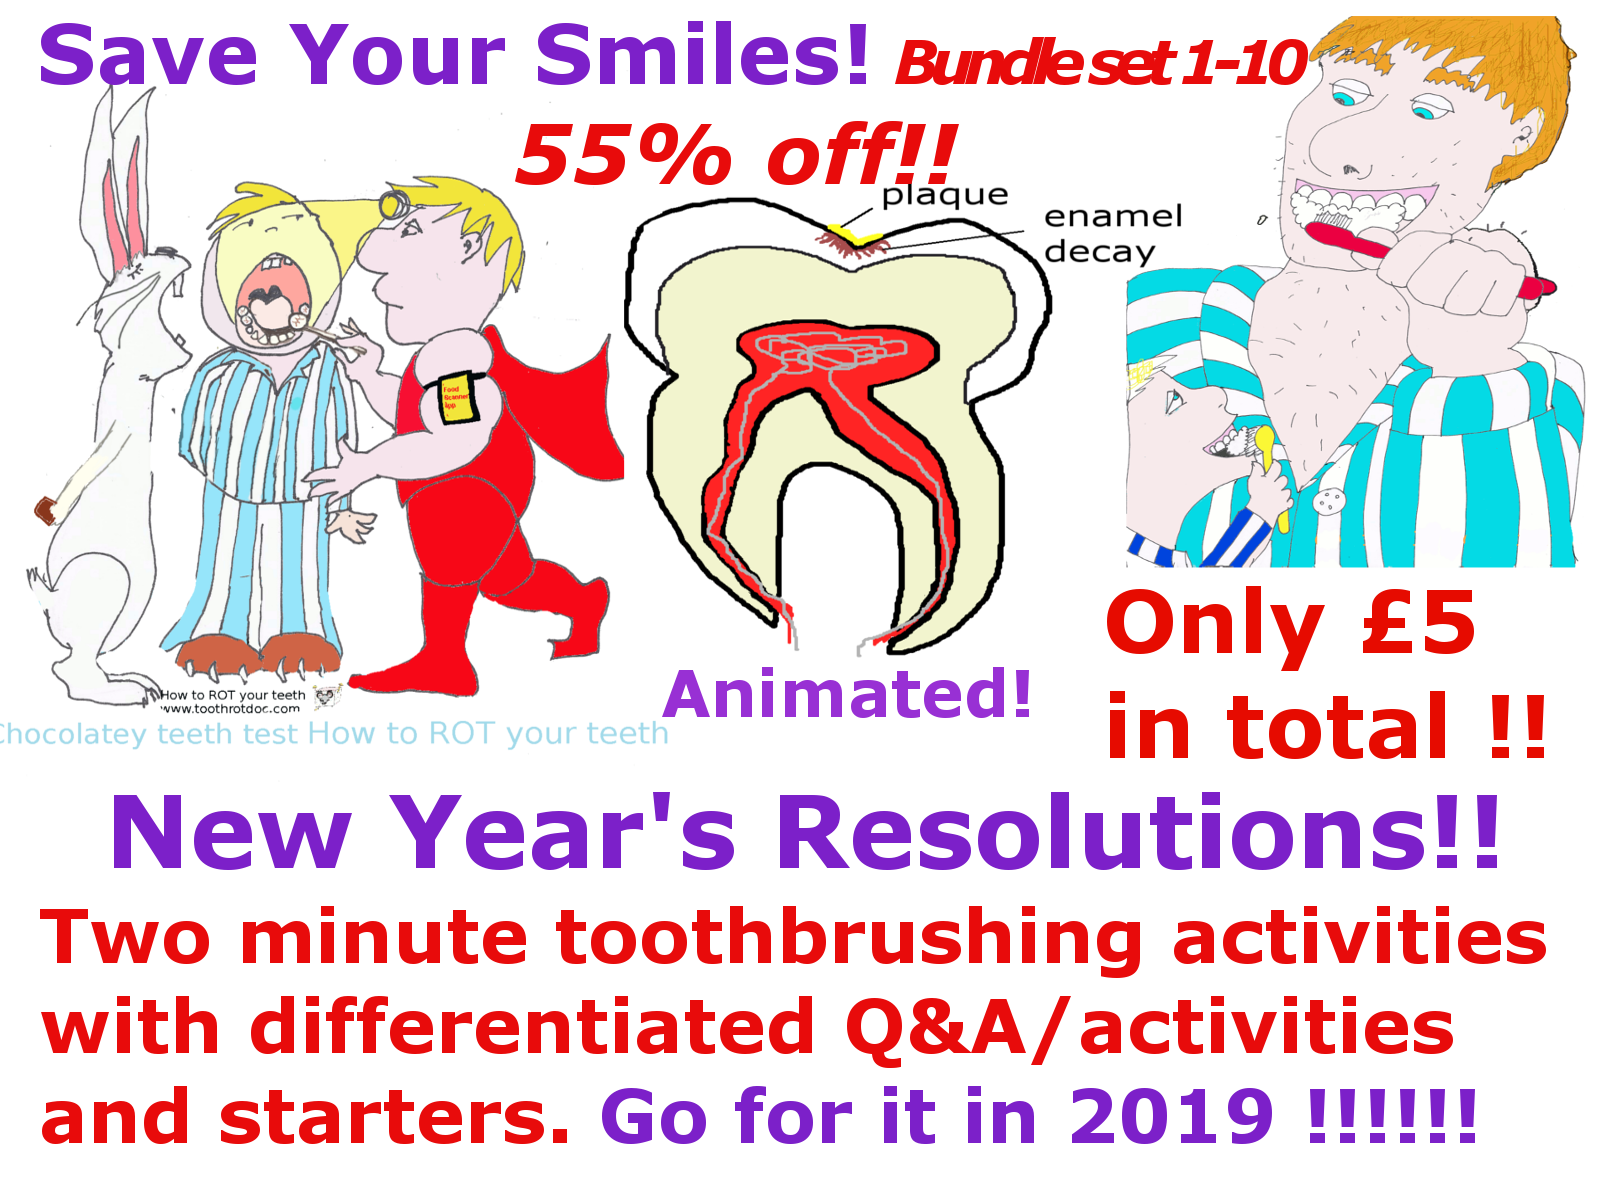 New Year's Resolutions! Complete set of 14 two minute toothbrushing educational animated activity